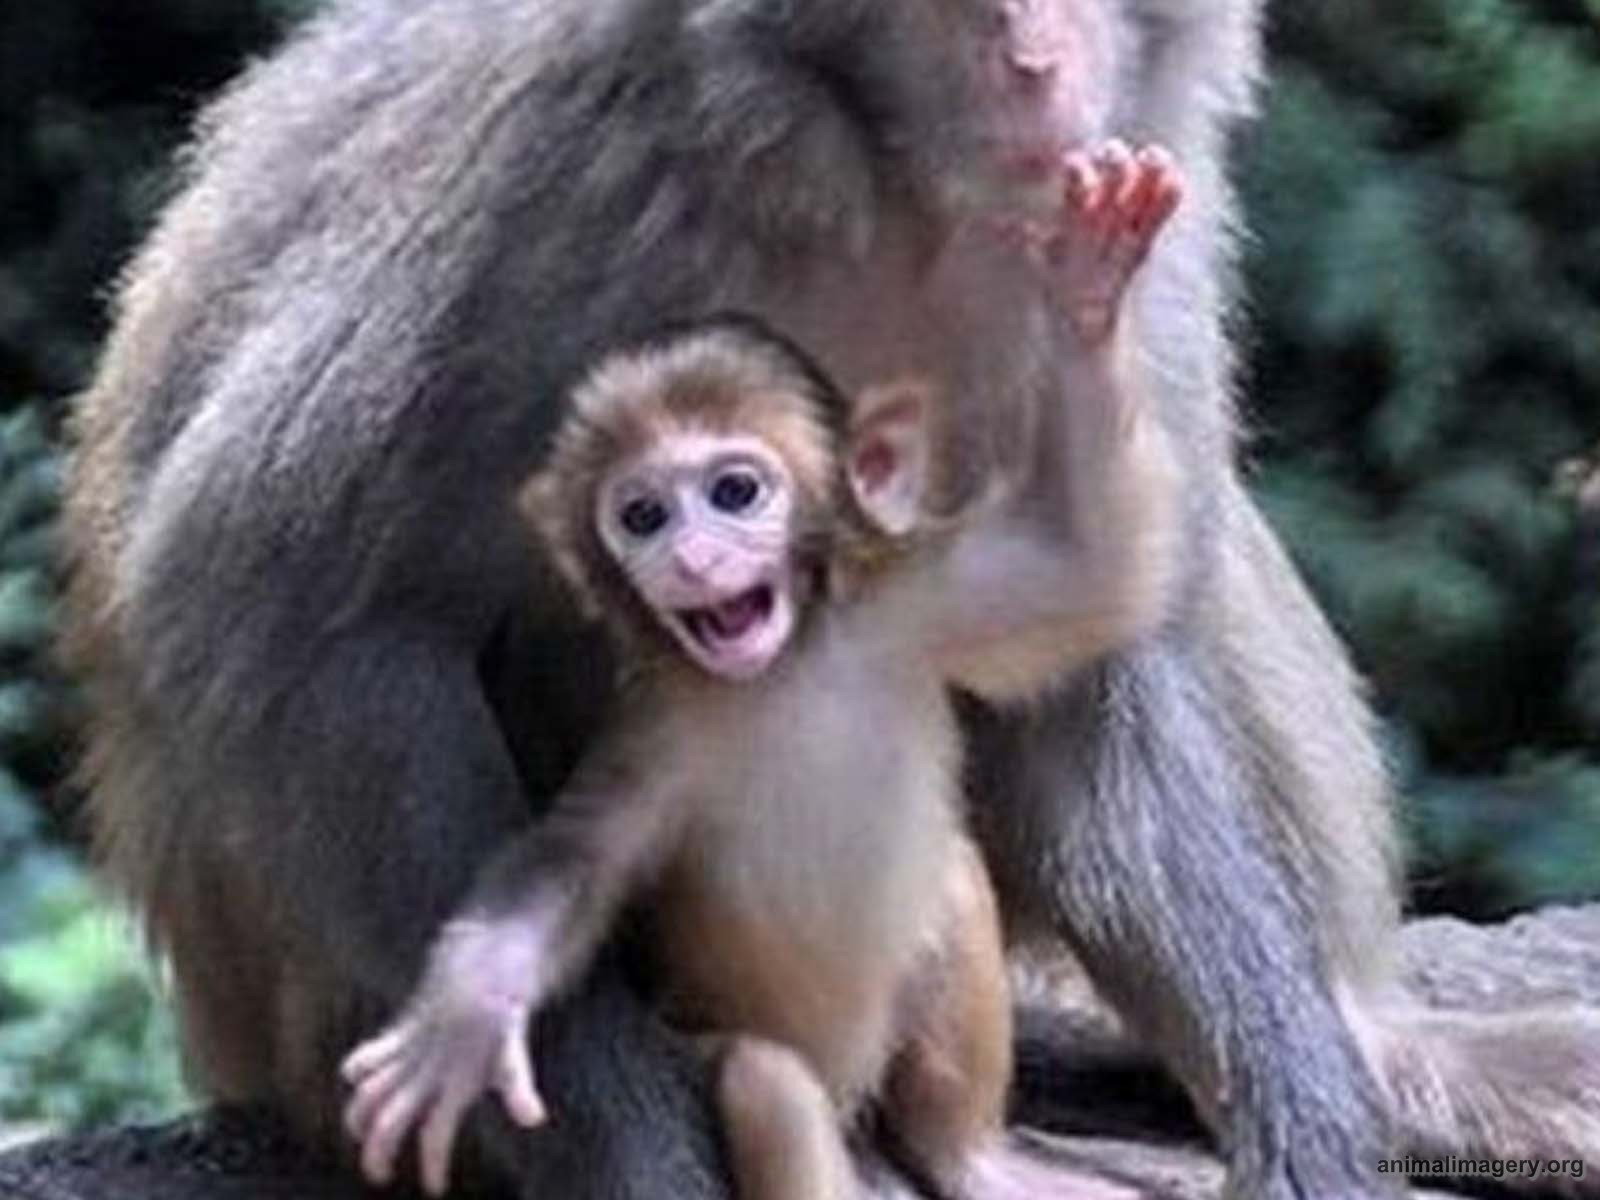 Cute Baby Monkeys Images Crazy Gallery 1600x1200